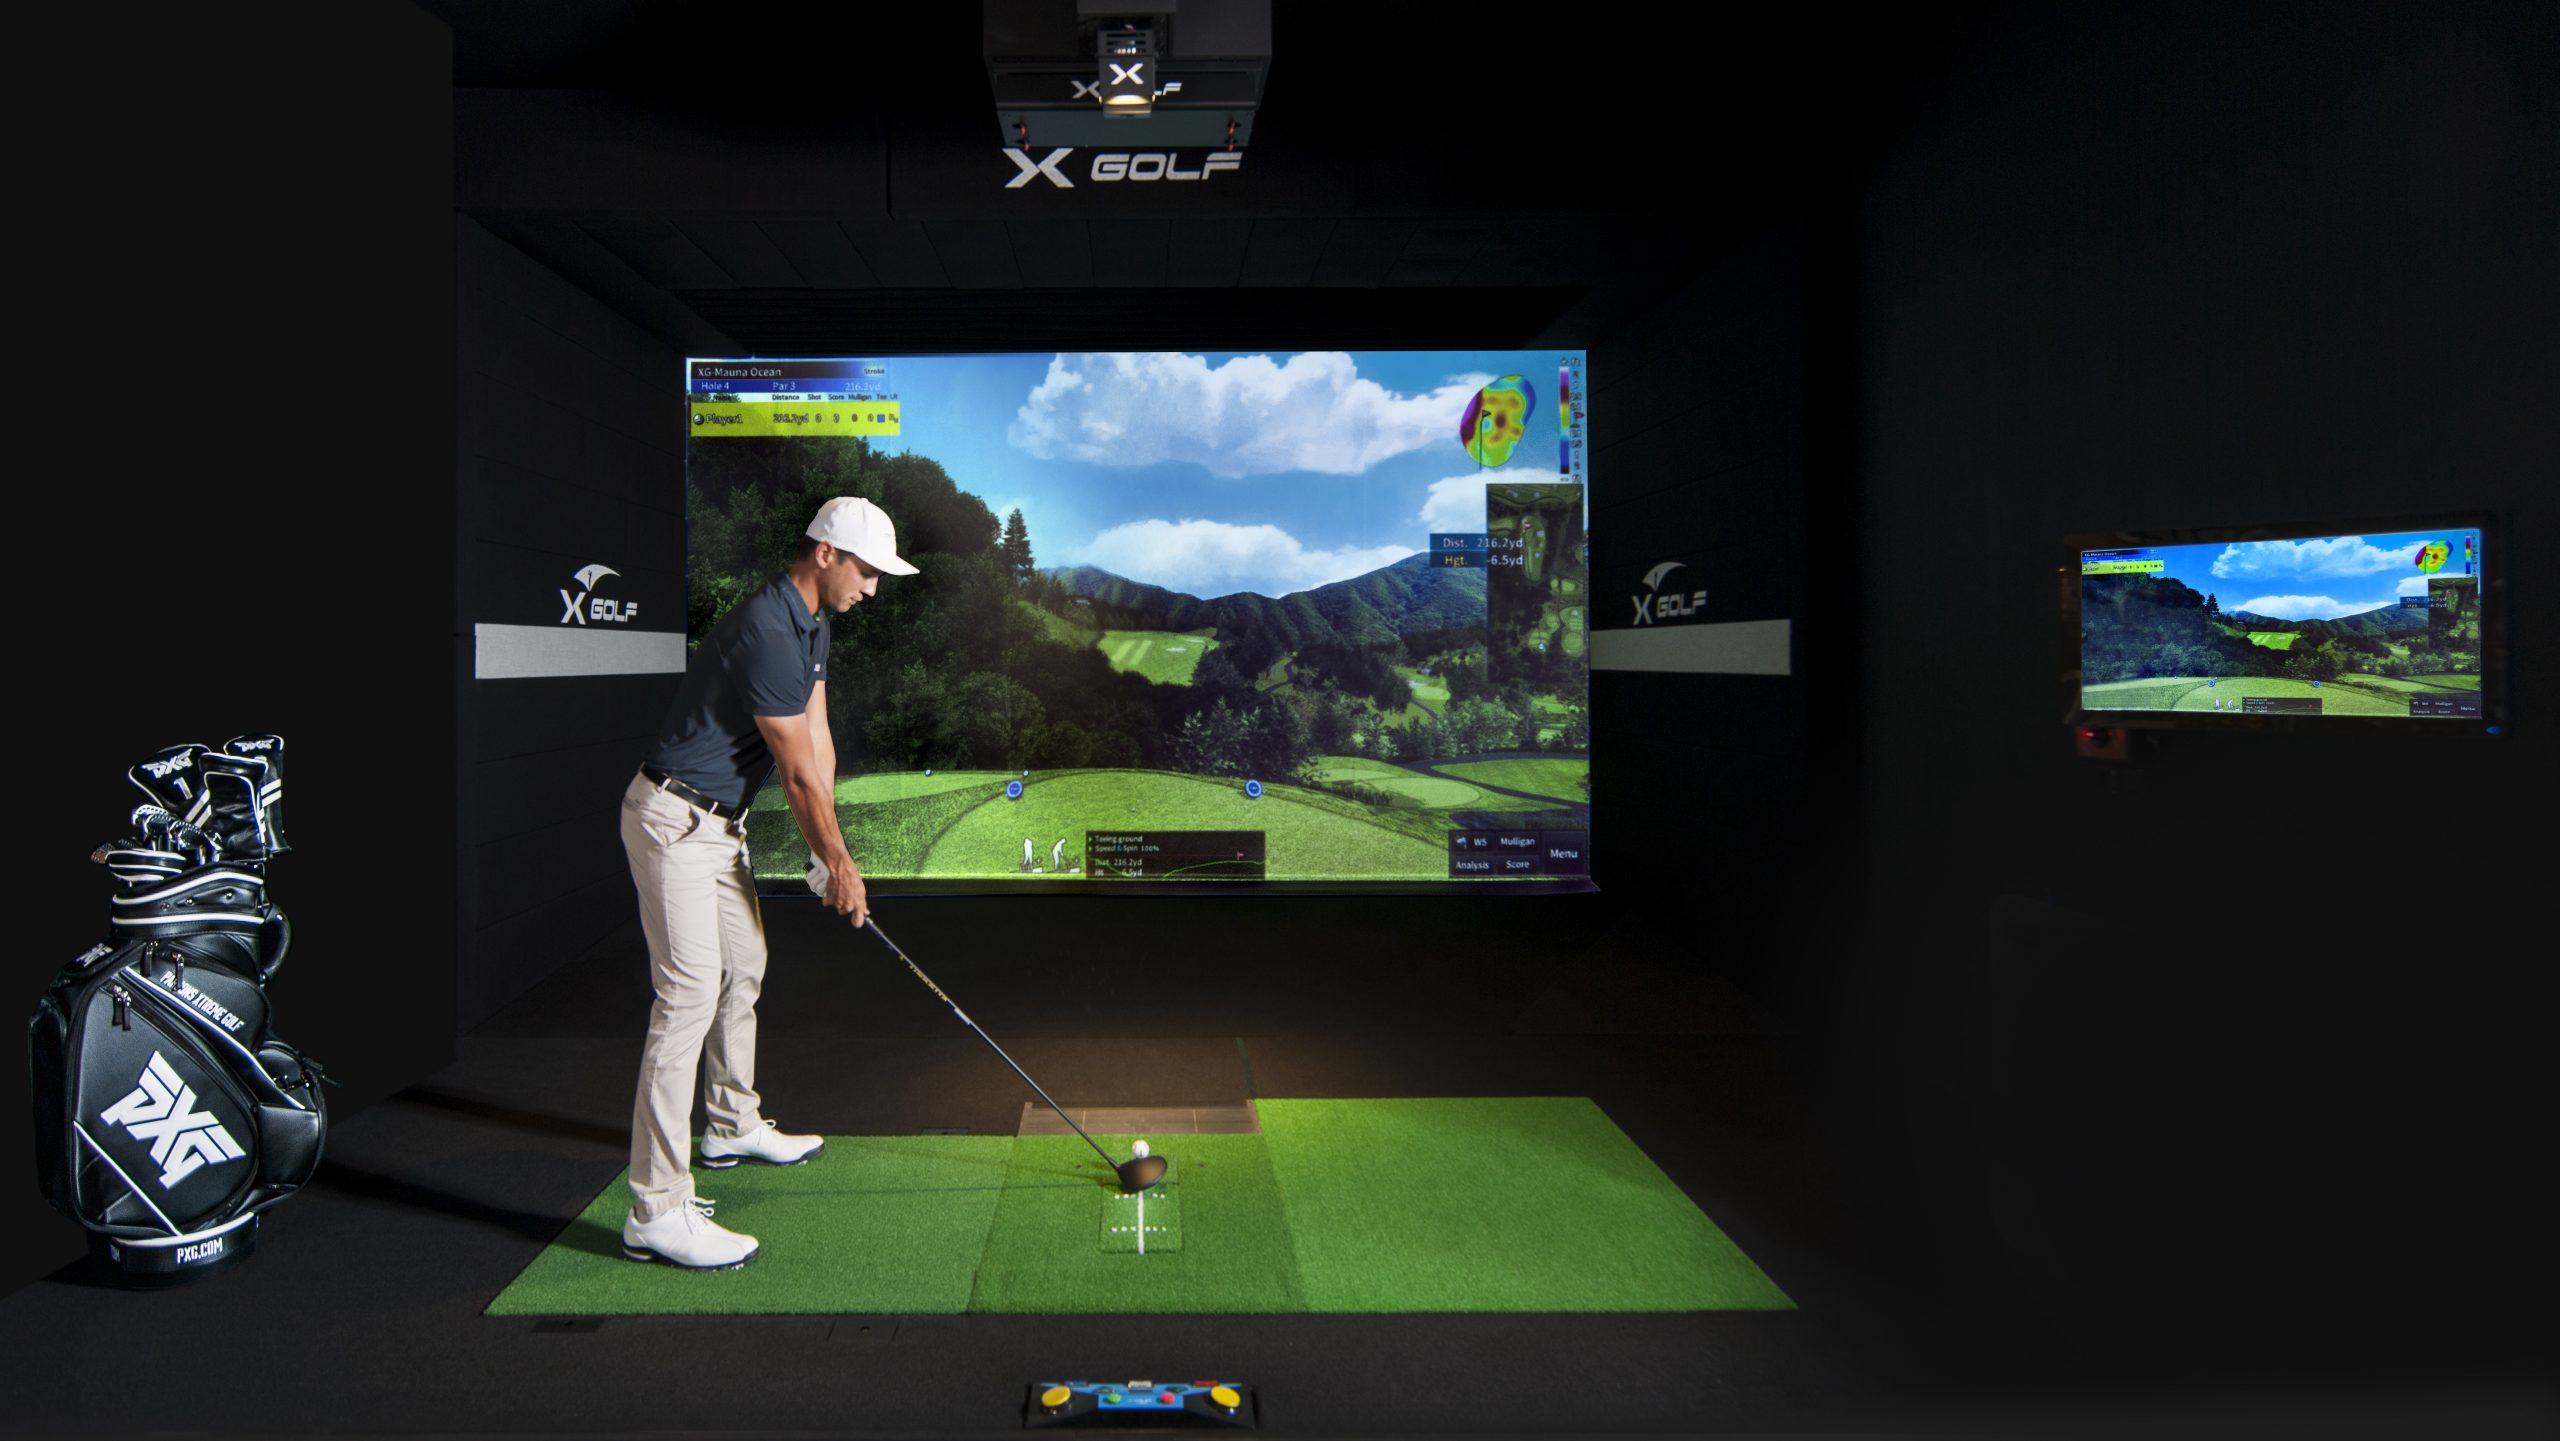 Golf Pro playing X-Golf Simulator